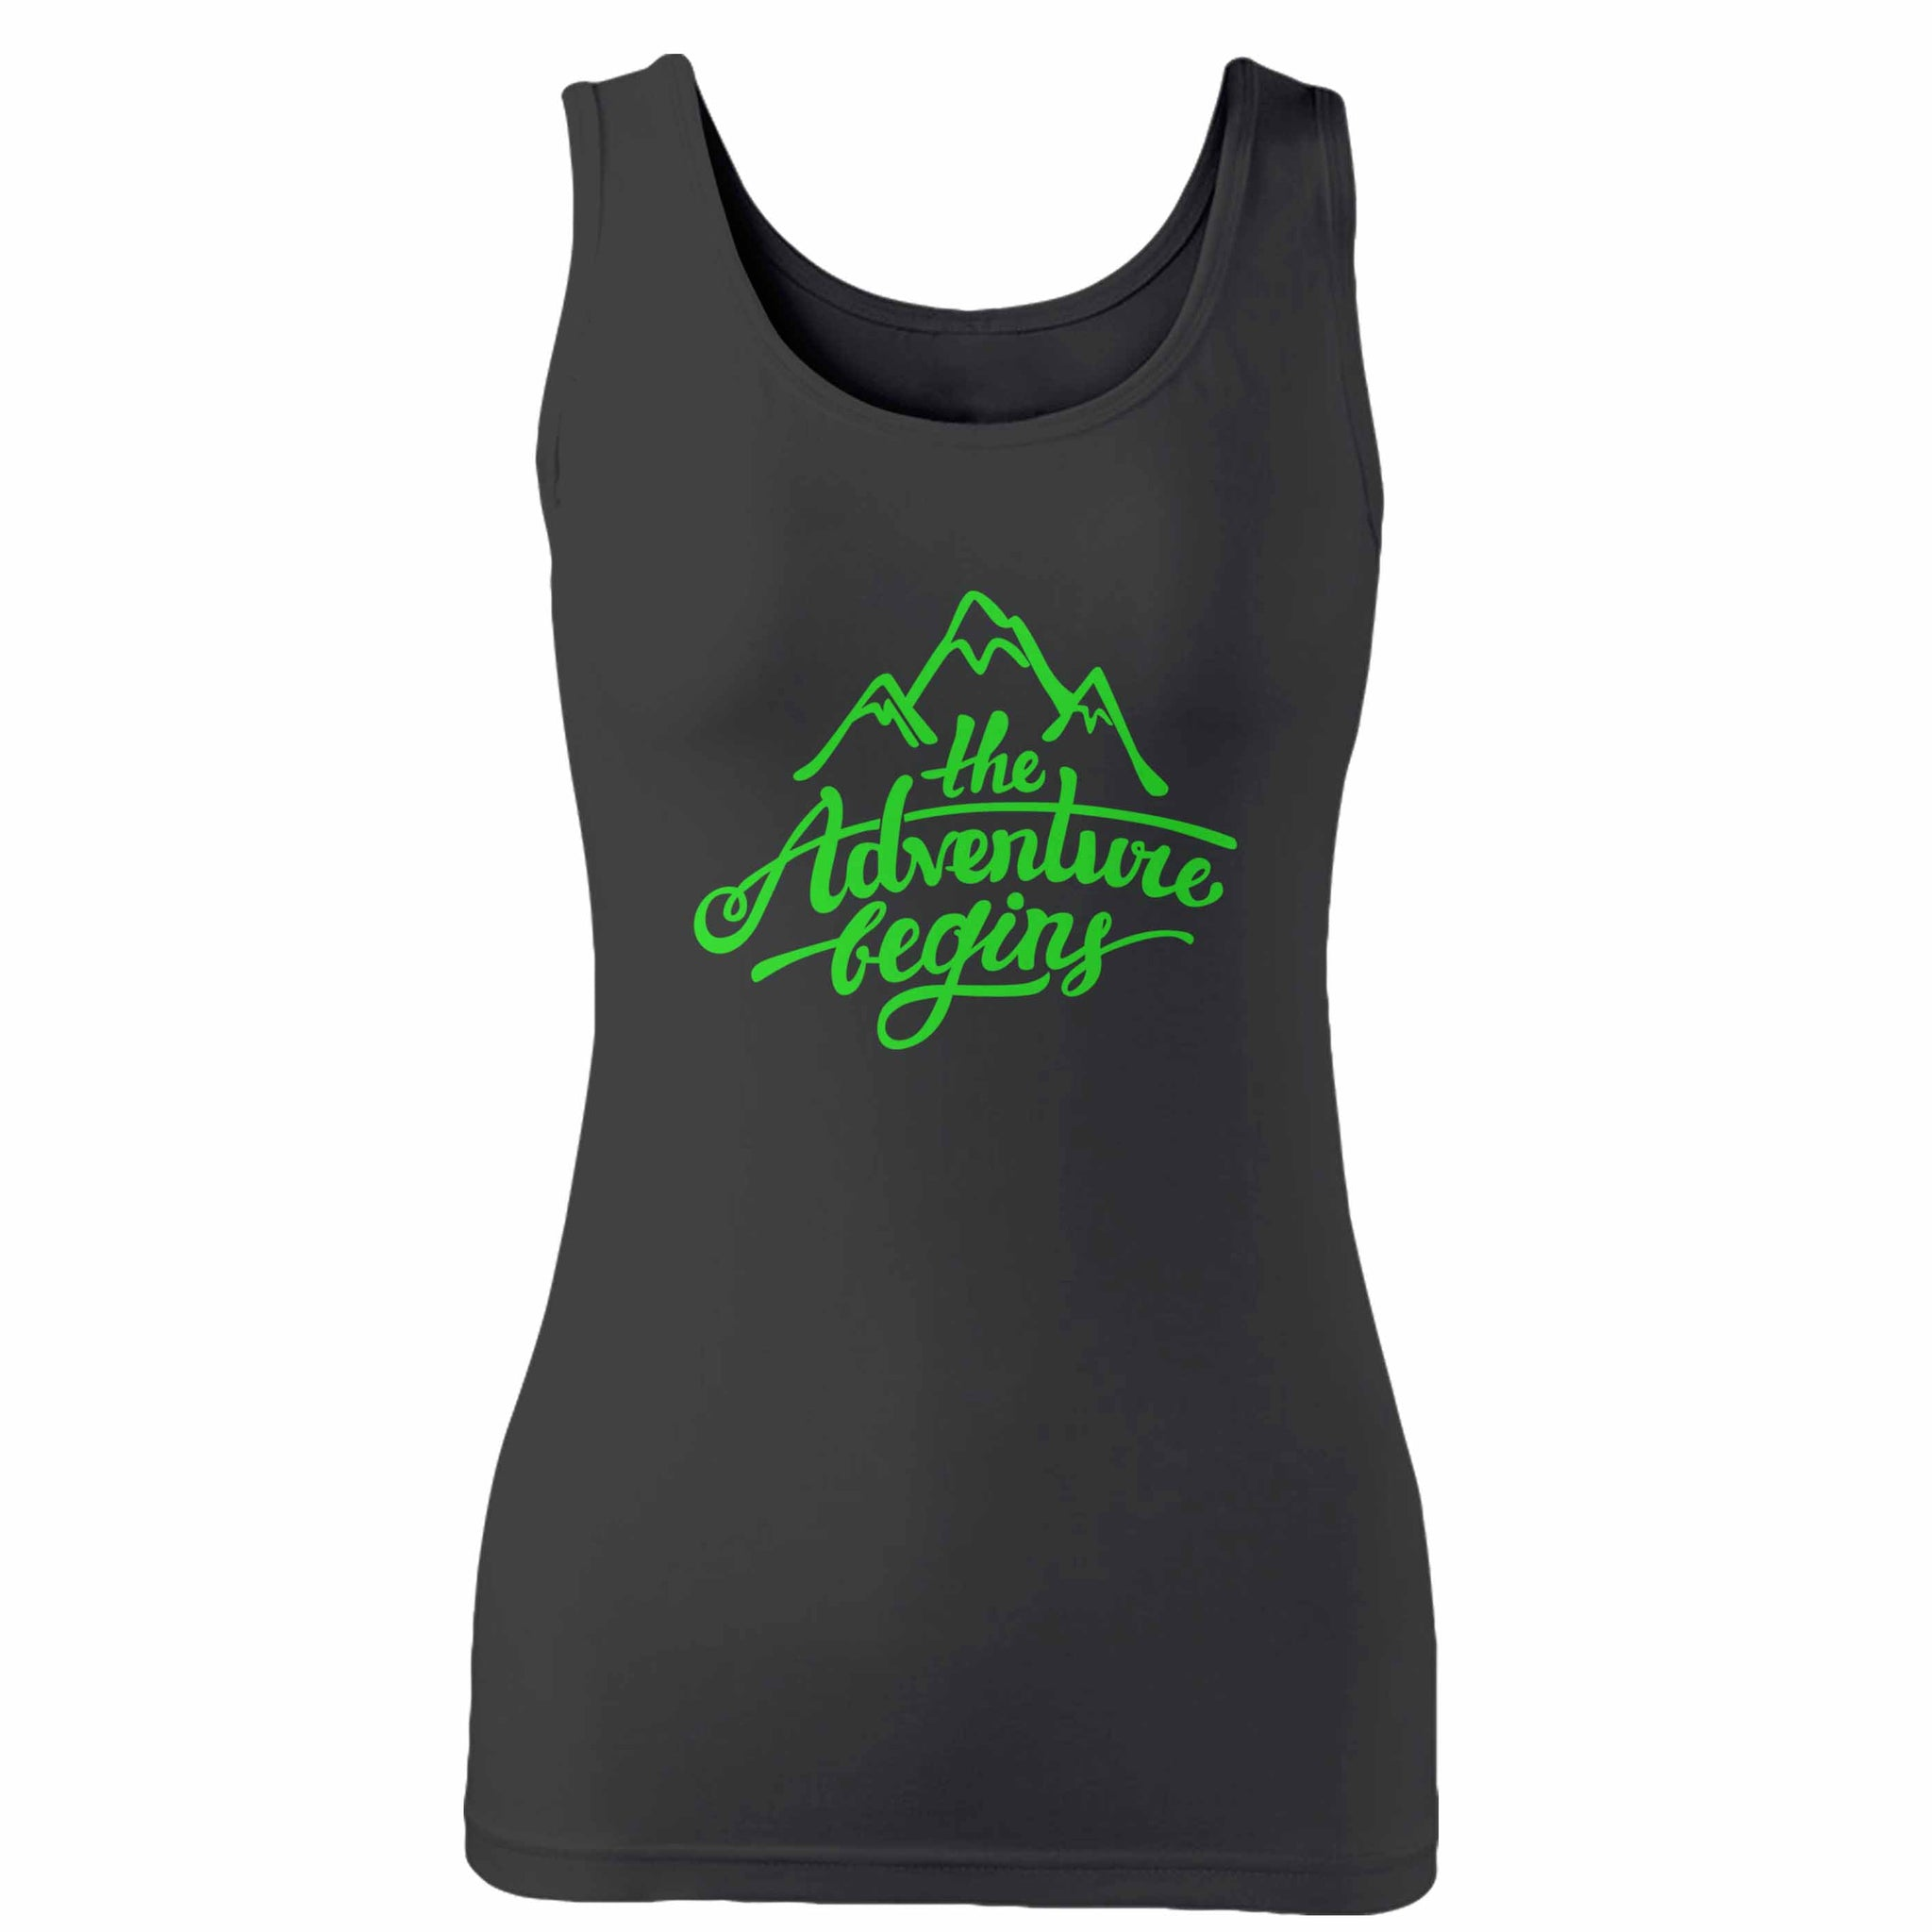 The Adventure Begins Mountain Woman's Tank Top